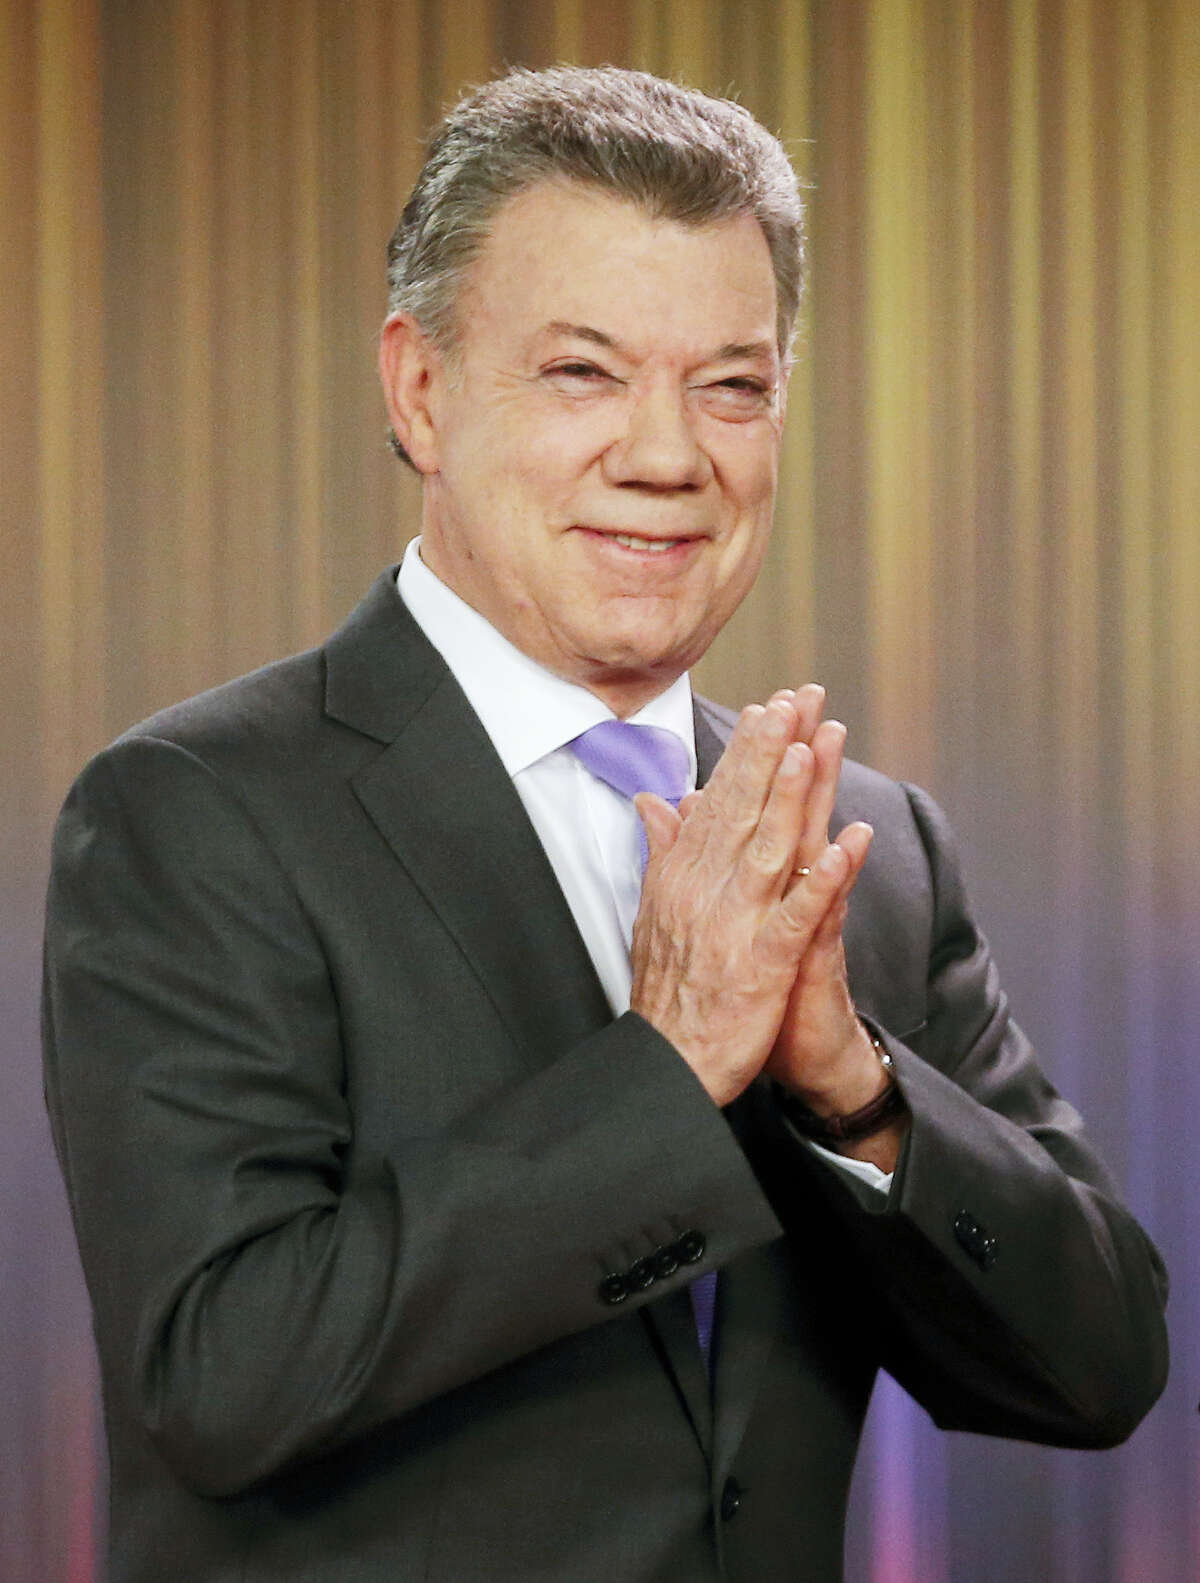 Colombia's President Juan Manuel Santos holds his hands as he arrives to deliver a statement at the presidential palace in Bogota, Colombia, Friday, Oct. 7, 2016. Santos won the Nobel Peace Prize Friday, just days after voters narrowly rejected a peace deal he signed with rebels of the Revolutionary Armed Forces of Colombia, FARC.